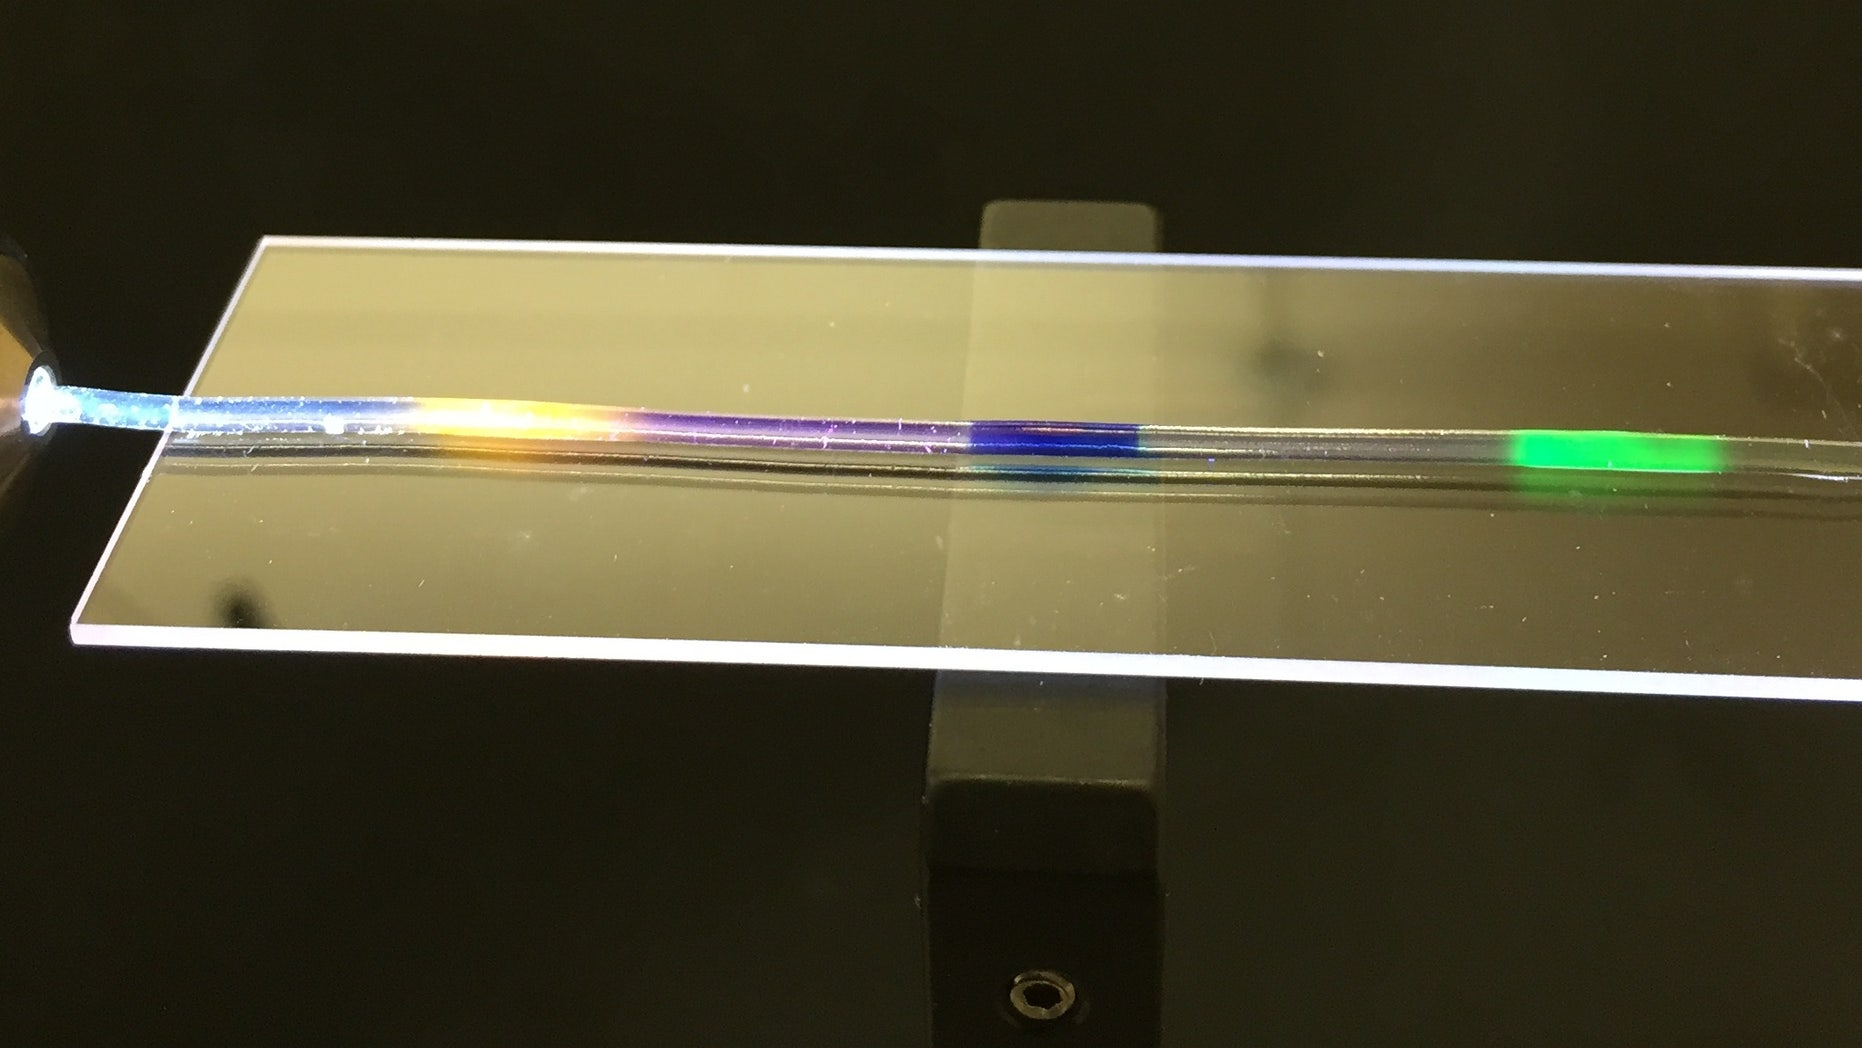 MIT researchers have developed a stretchy optical fiber in which they have injected multiple organic dyes (yellow, blue, and green regions). In addition to lighting up, the dyes act as a strain sensor, enabling researchers to quantify where and by how much a fiber has been stretched. (Courtesy of the researchers)